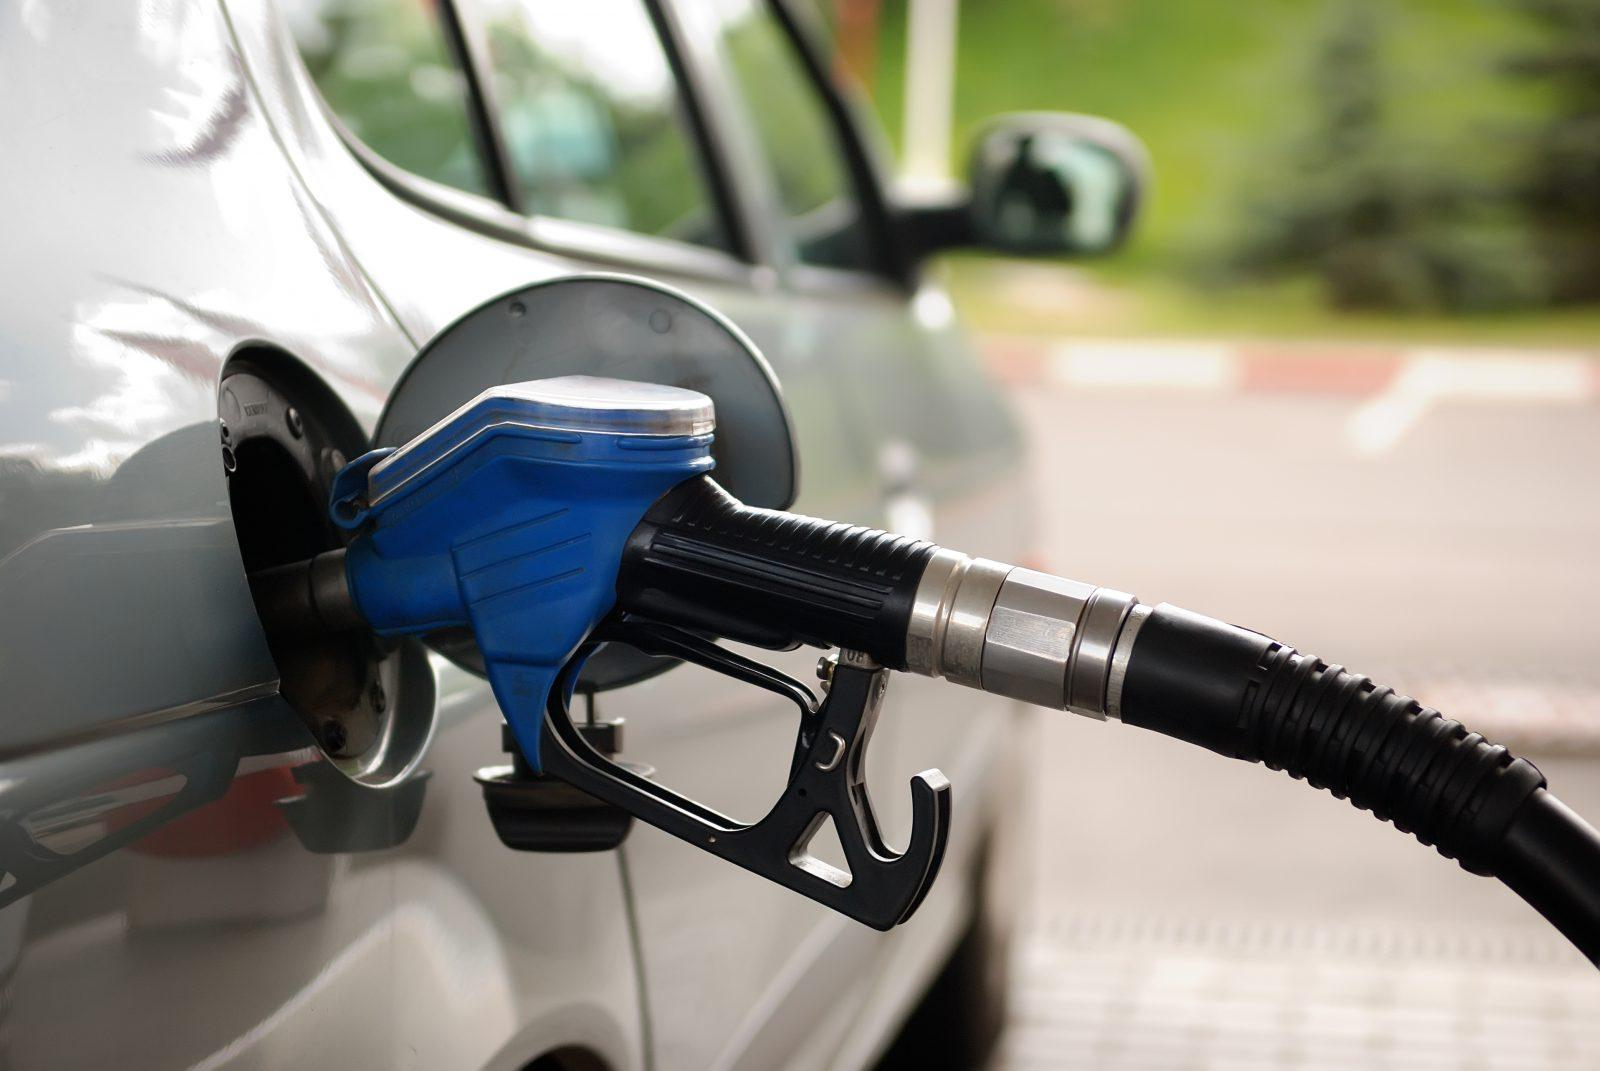 oil affects fuel consumption